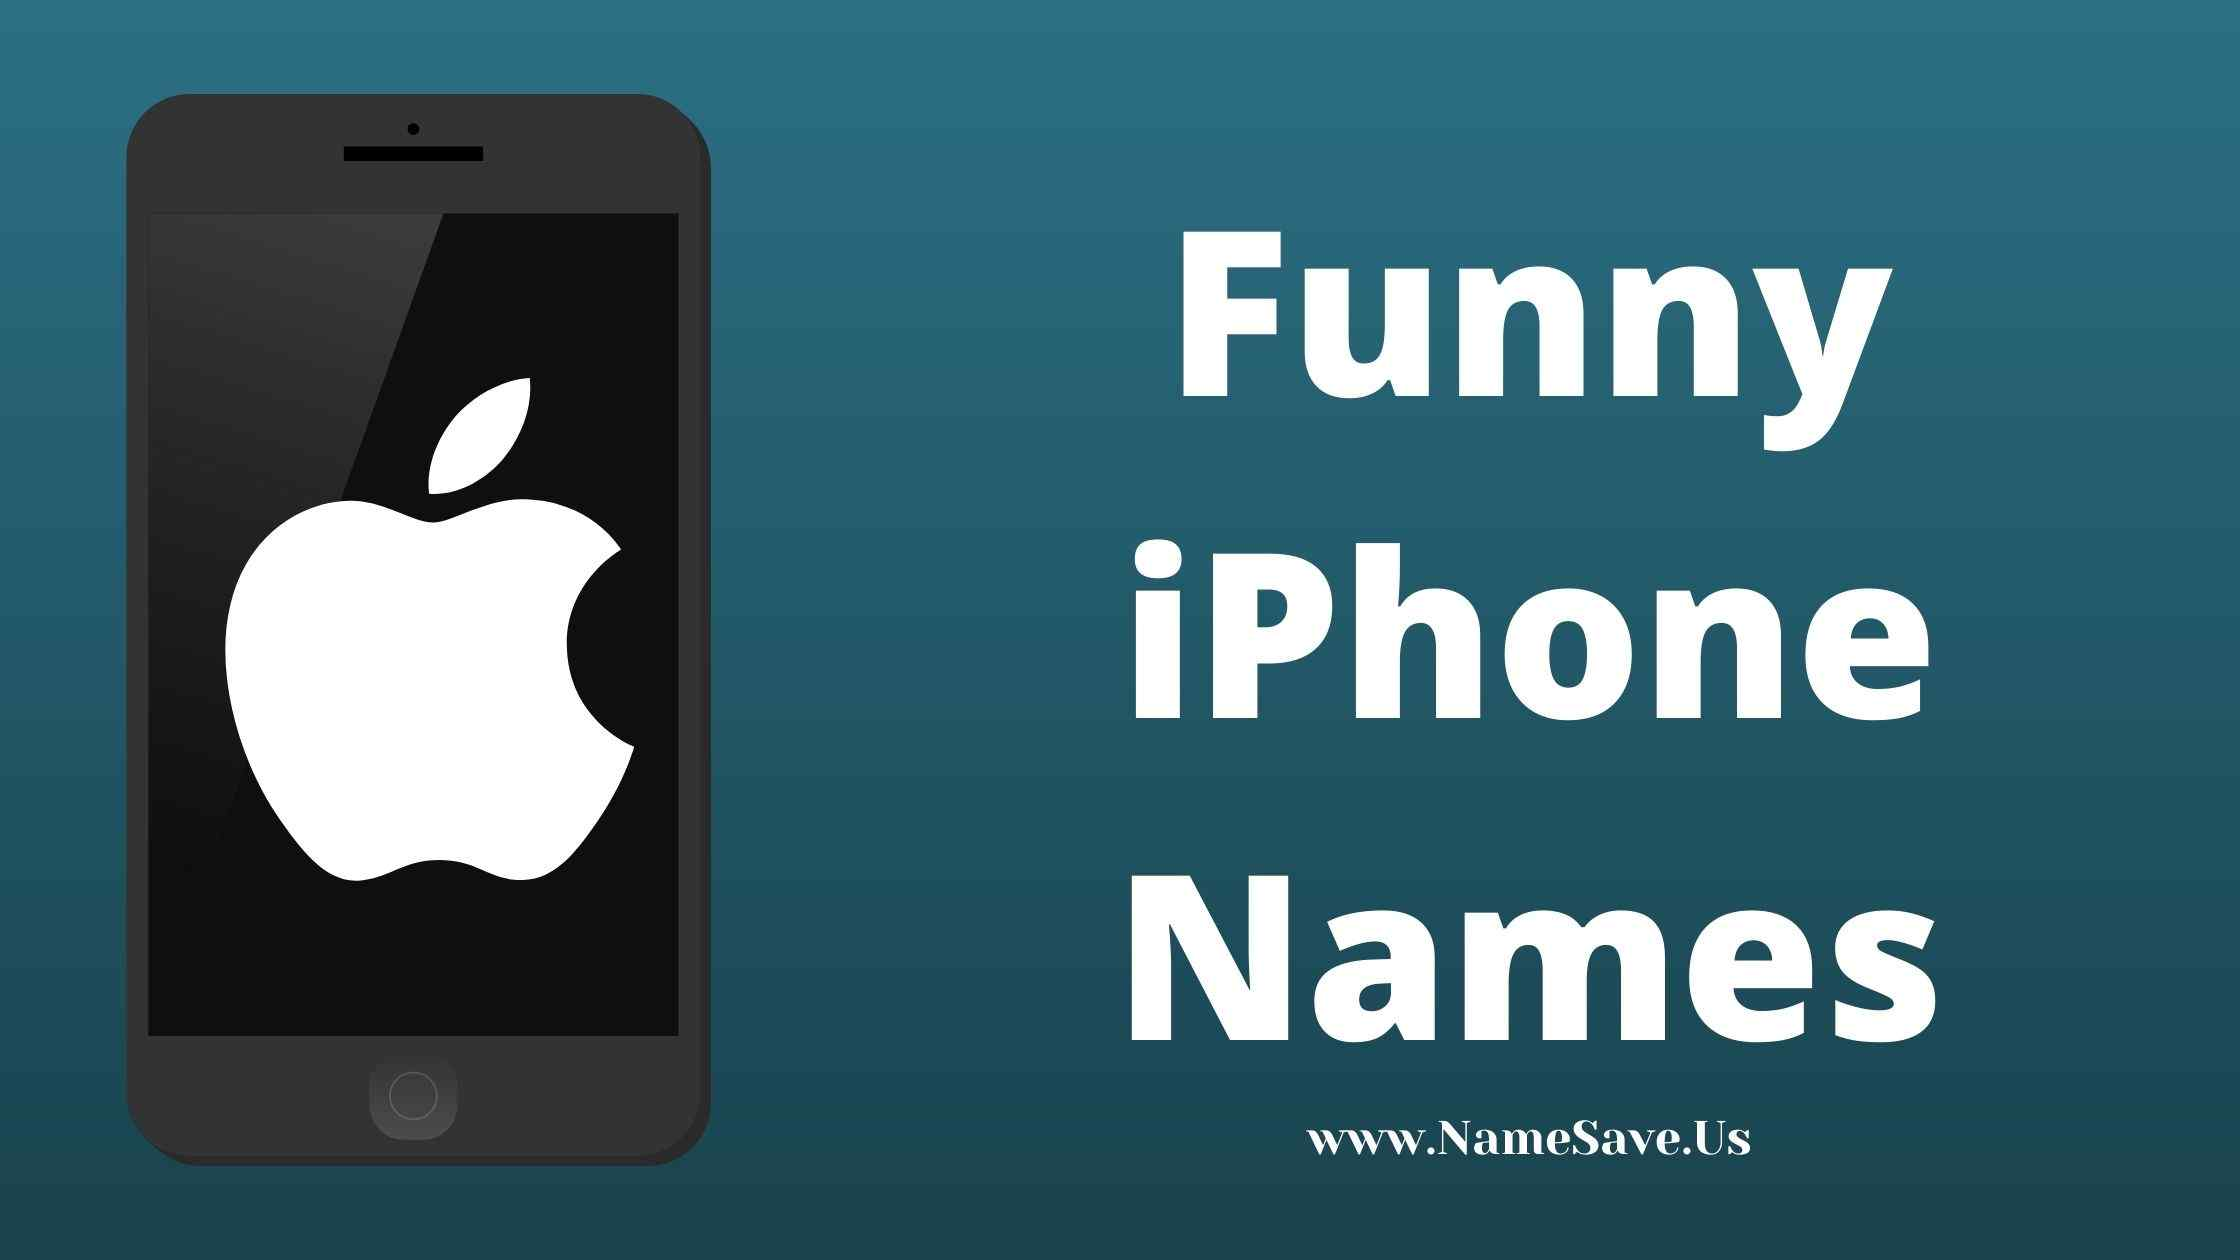 Funny iPhone Names